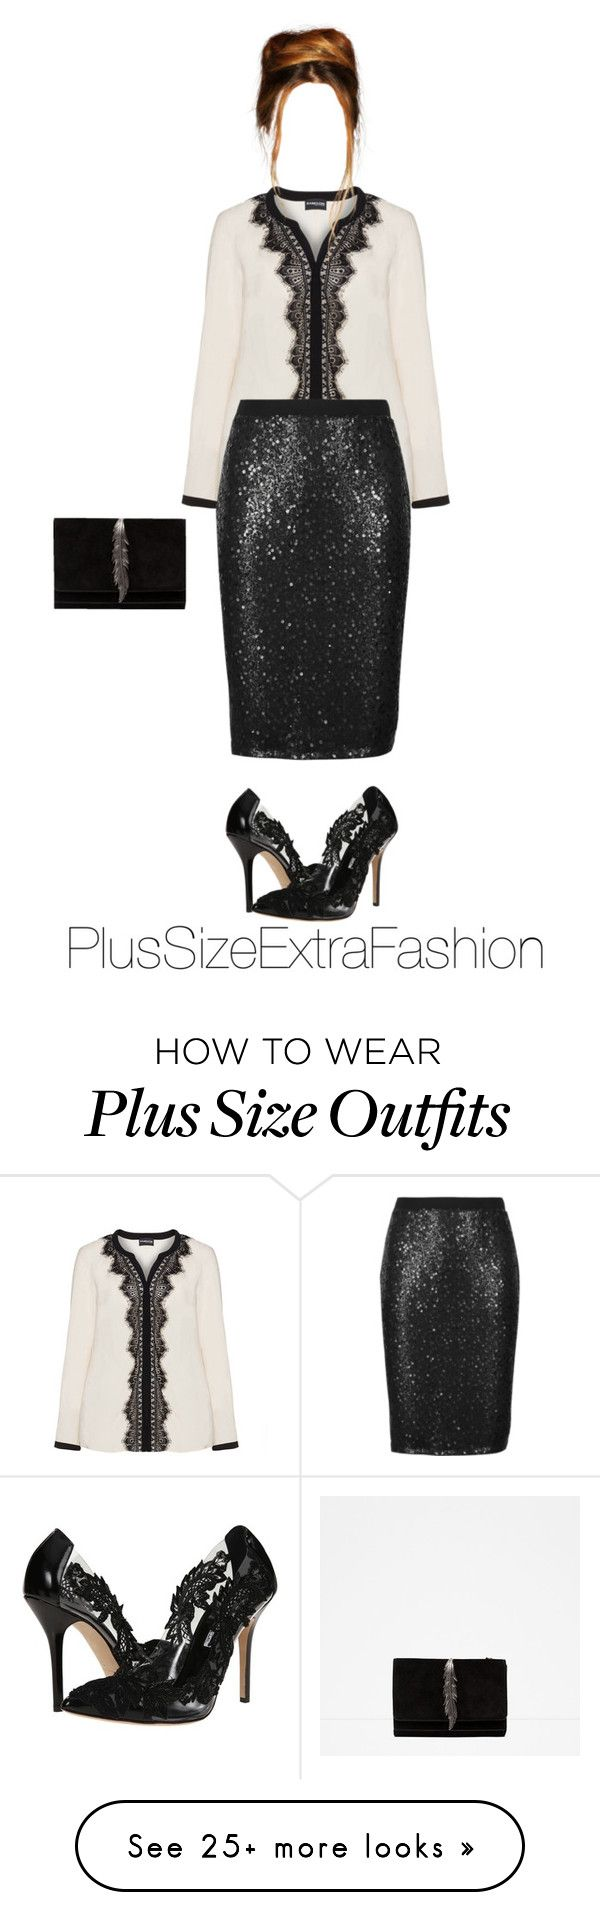 """Plus Size Holiday Party Outfit ft. Black Lace"" by plussizeextrafashion on Polyvore featuring Samoon, M&S Collection, Oscar de la Renta and Zara"